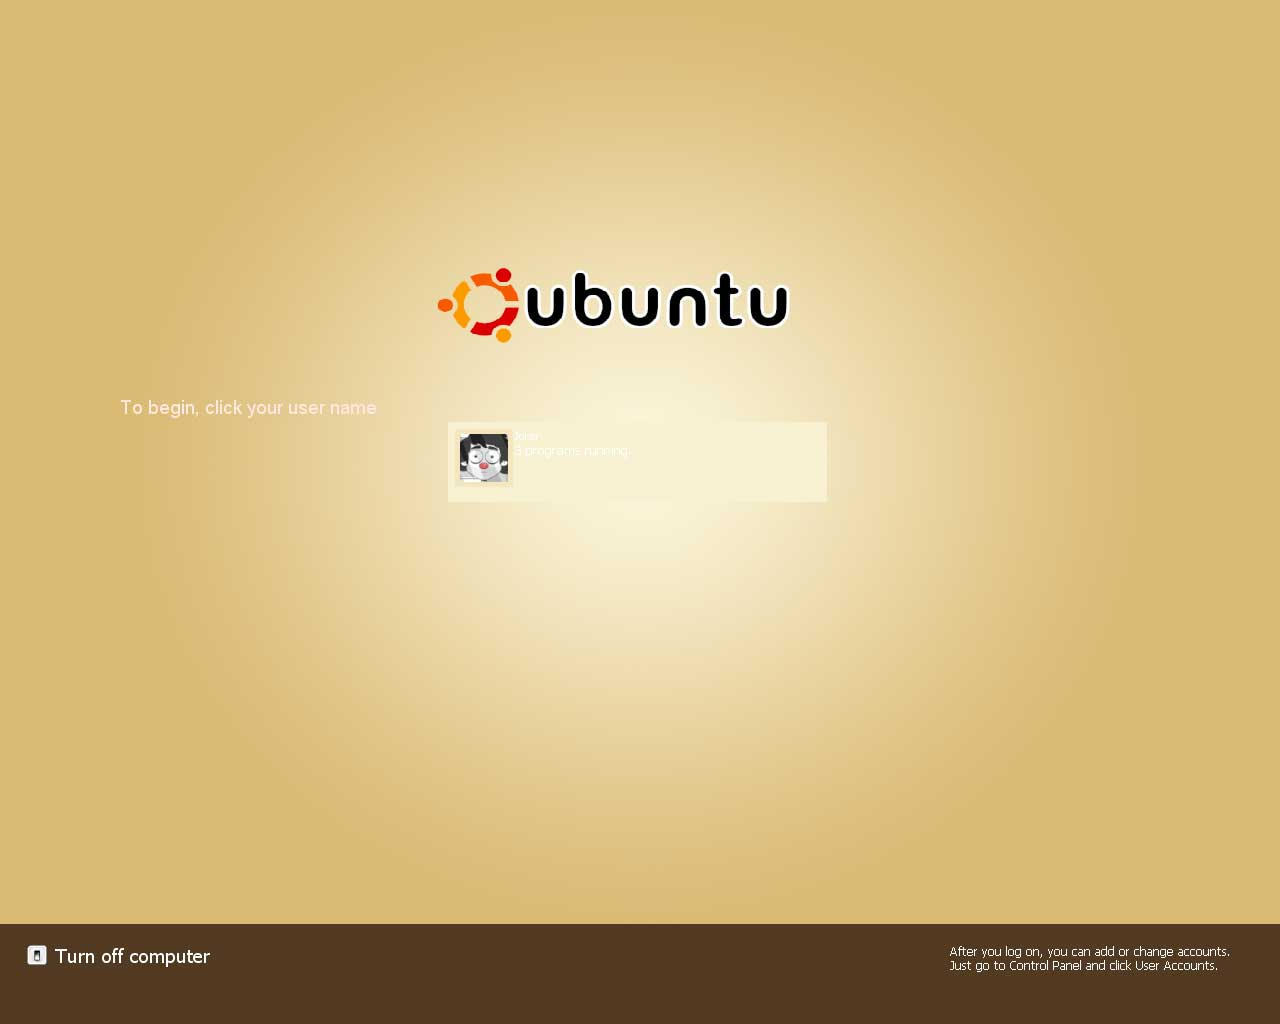 Ubuntu Logon by Misery-Joker